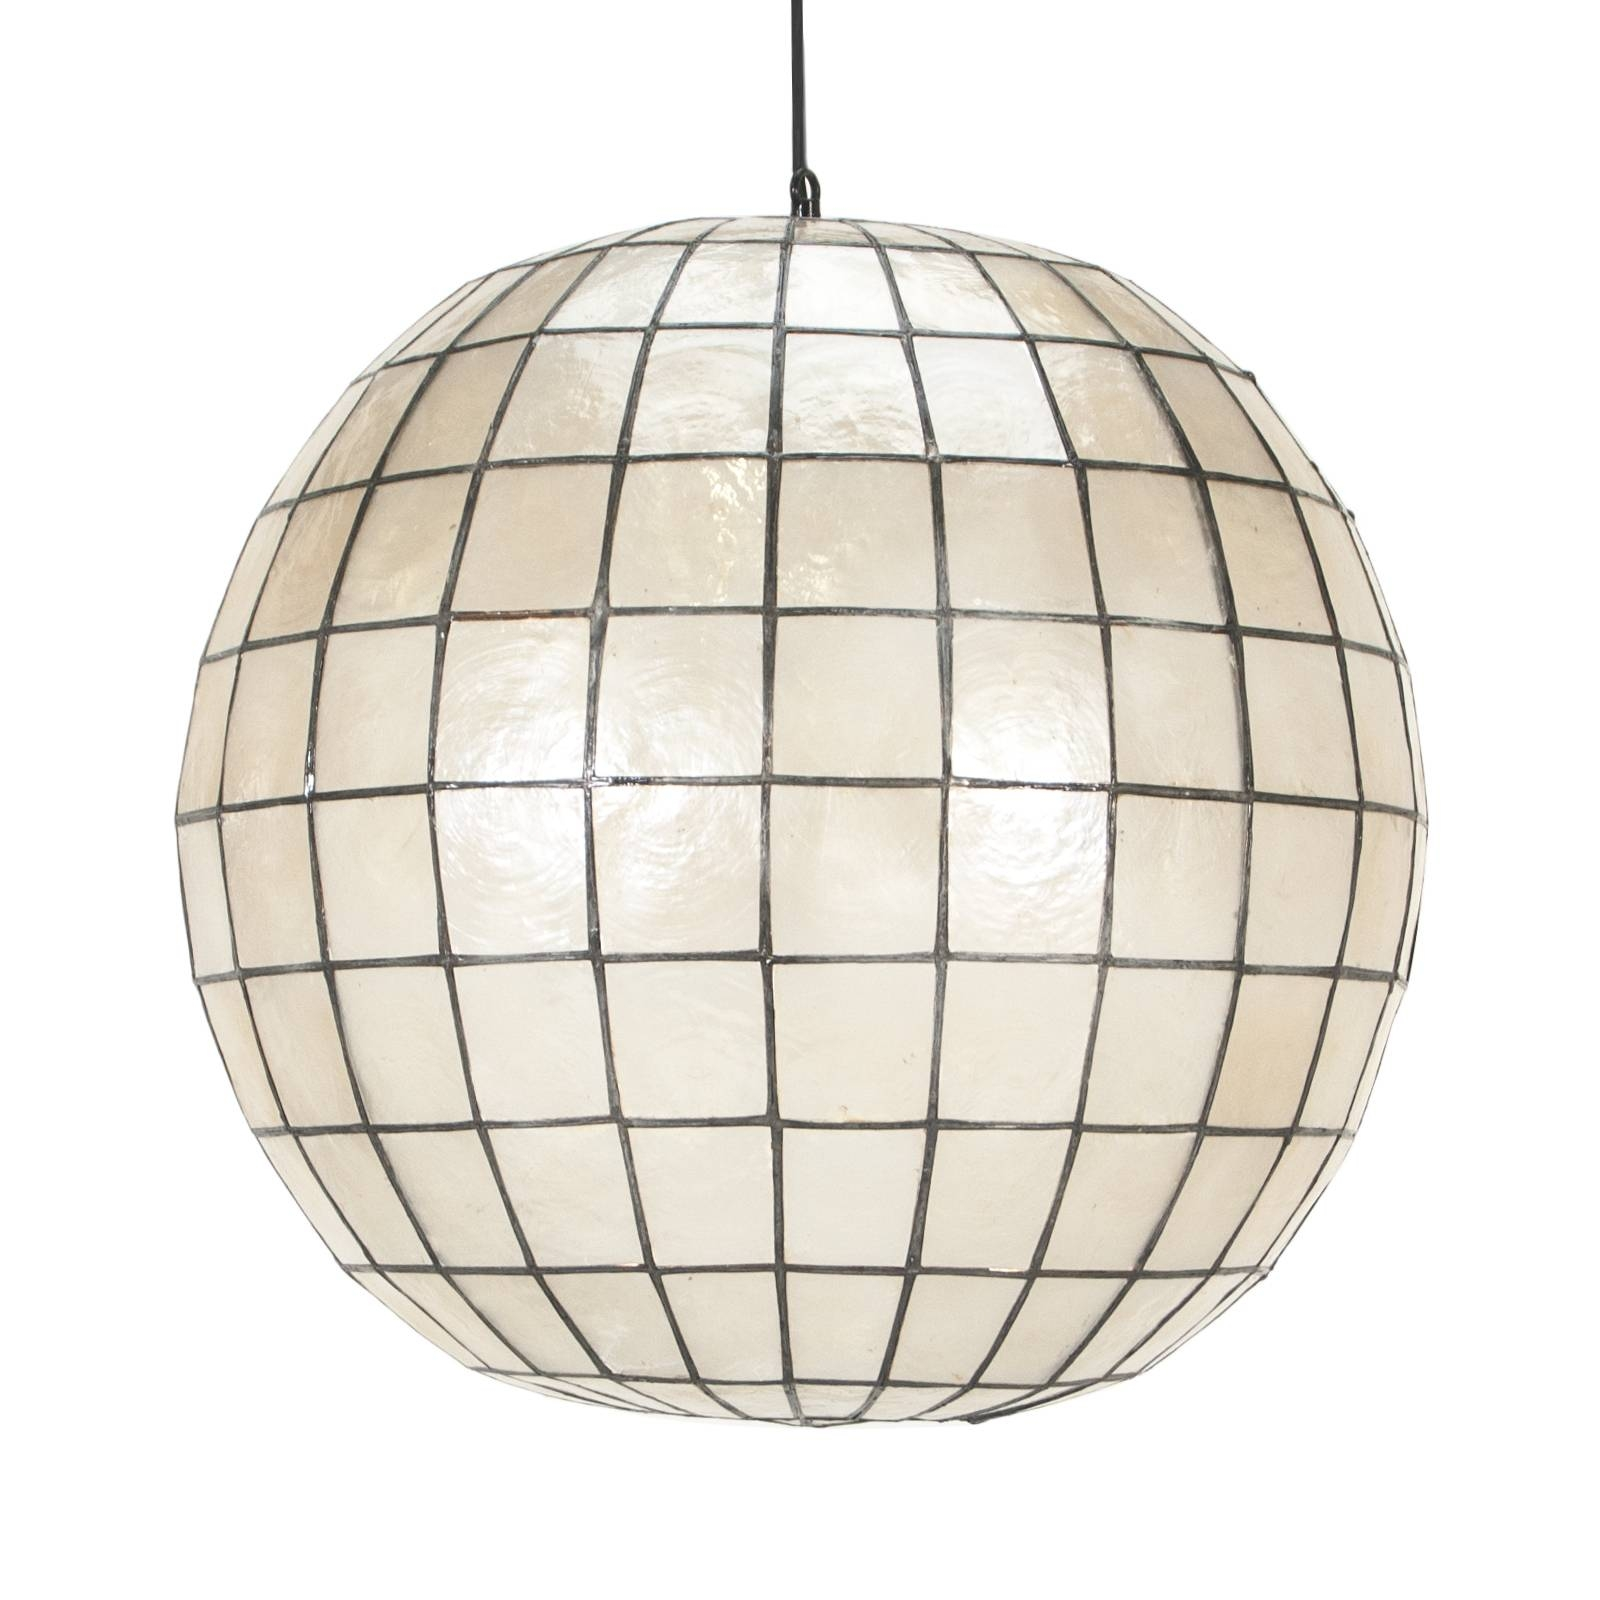 Pendant Lighting Rentals | Event Lighting Rental | Delivery With Regard To Shell Pendant Lights (View 12 of 15)